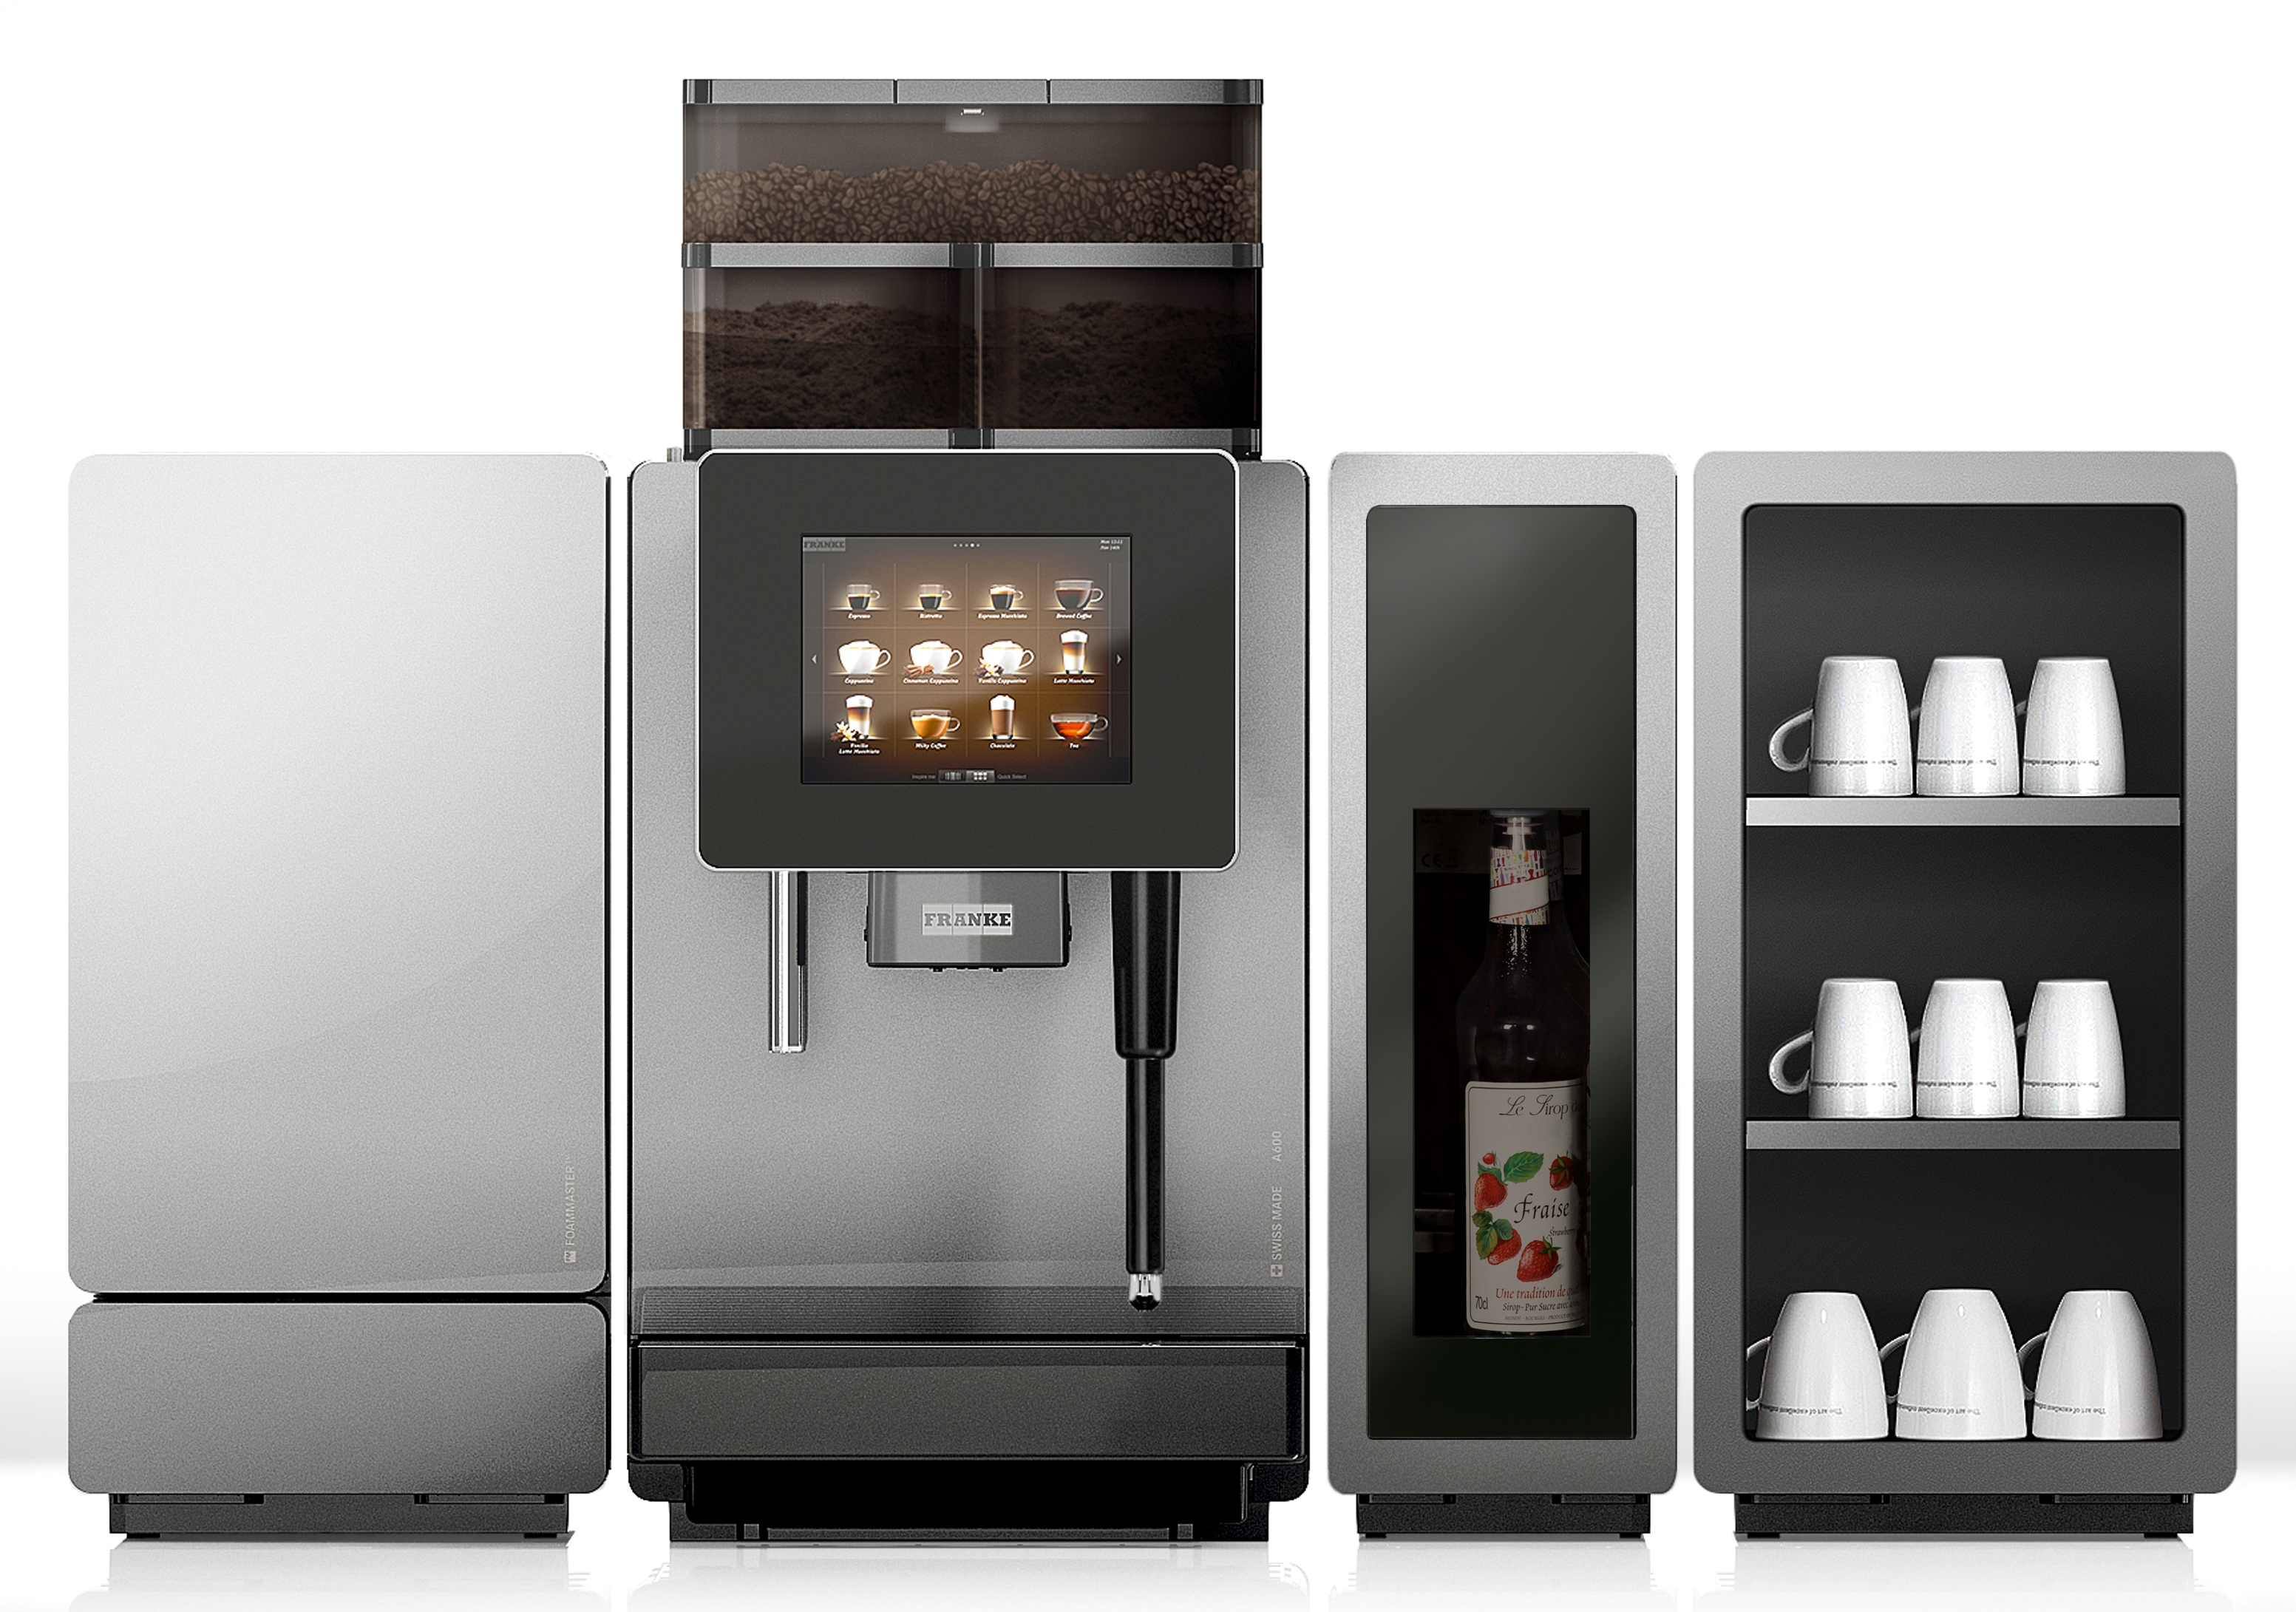 Franke Coffee Systems Franke Coffee Machines Specialists Caffia Coffee Group